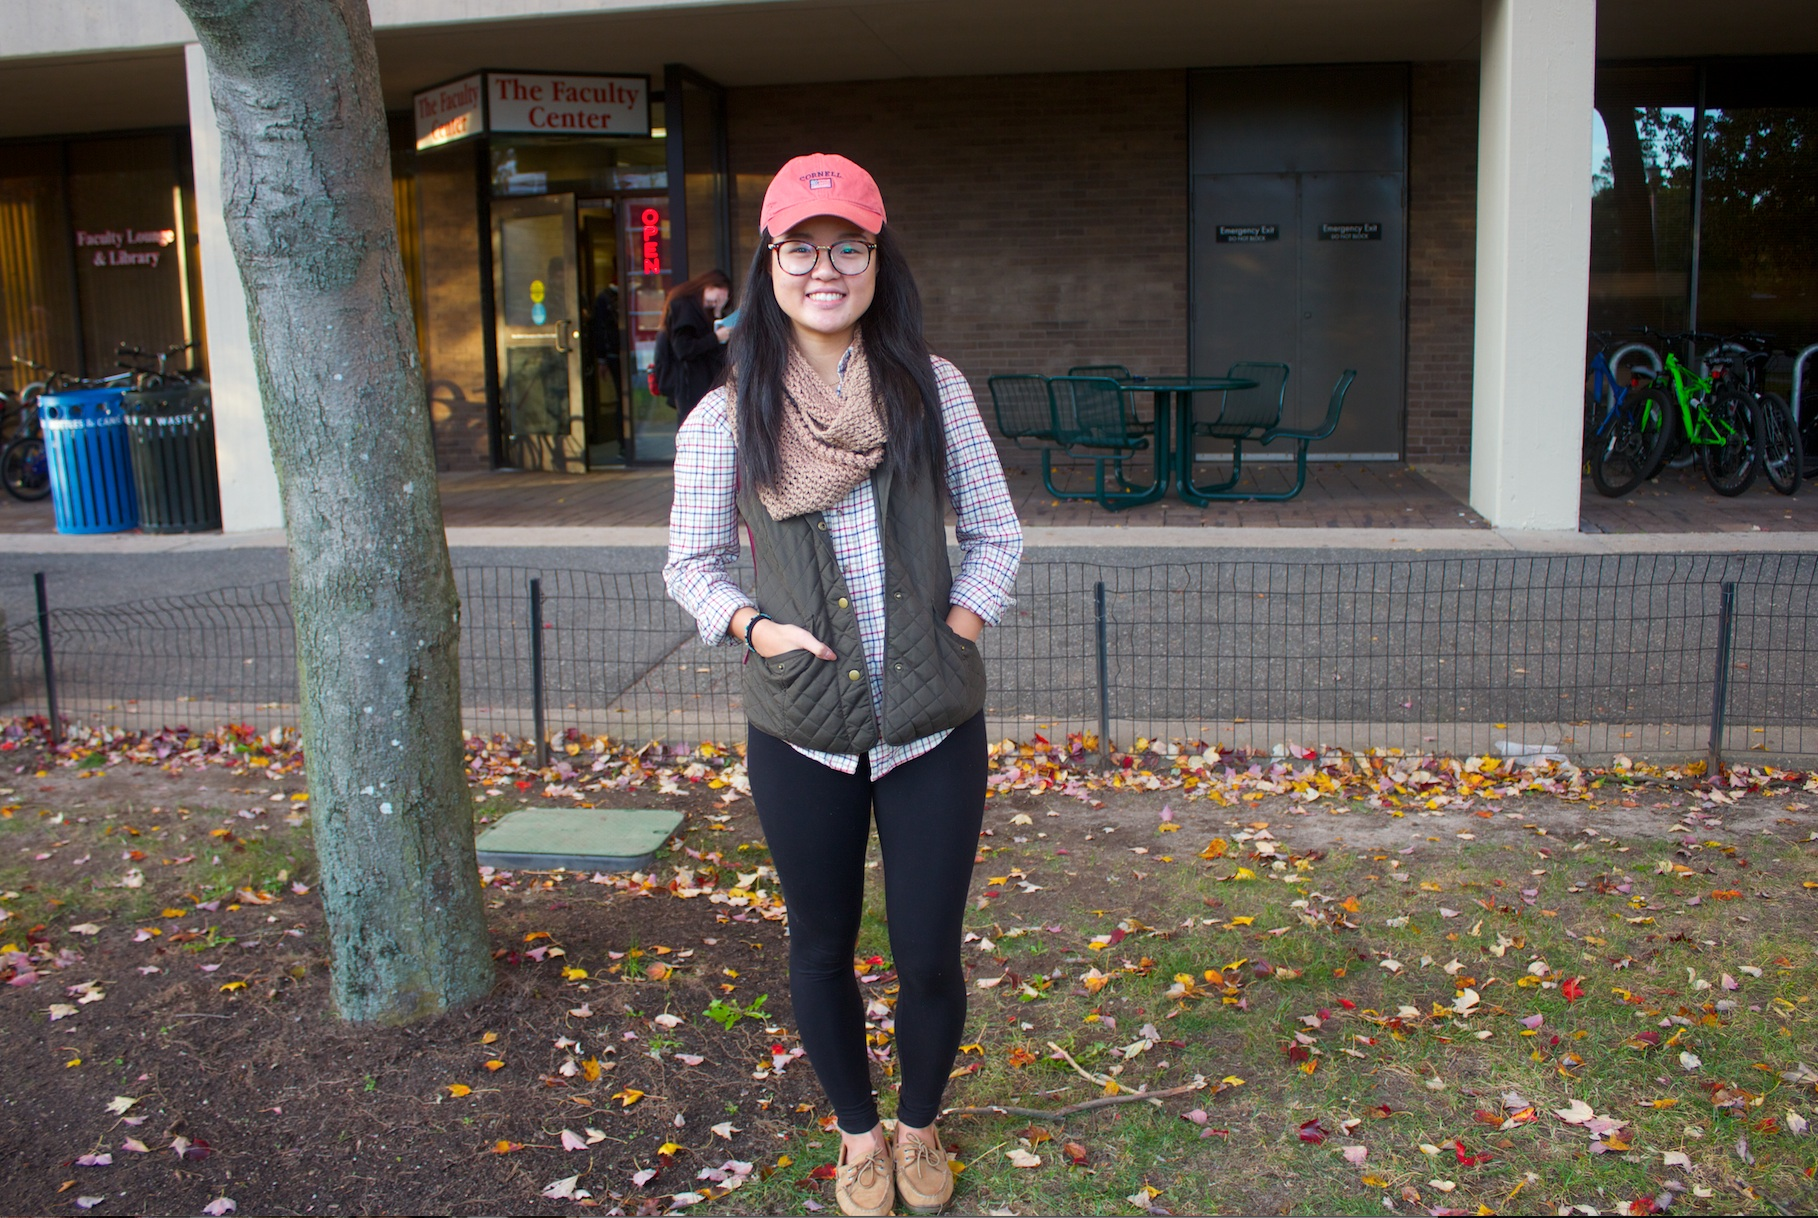 Wendy Liu, freshman health science major. Leggings are from Banana Republic, scarf is knitted, vest is from Bass and flannel is thrifted. RAWSON JAHAN/THE STATESMAN